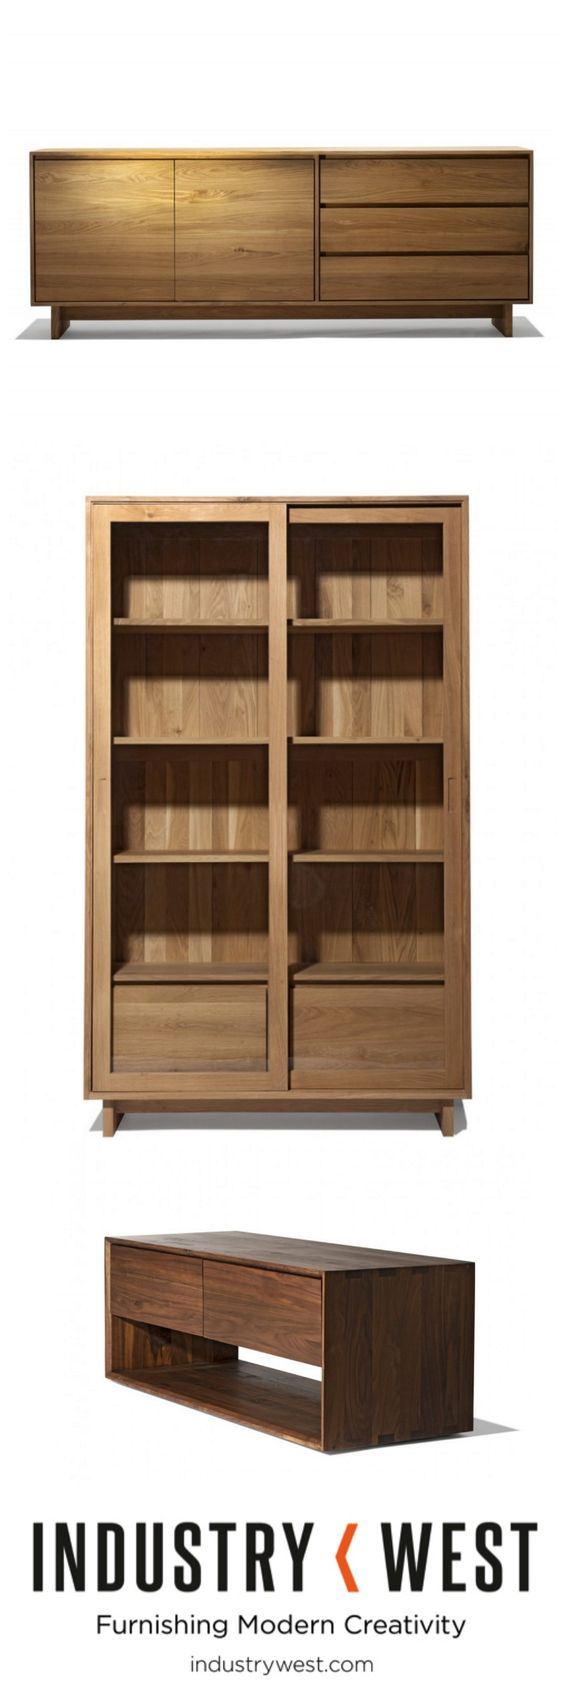 Sideboards hutches consoles and other storage options